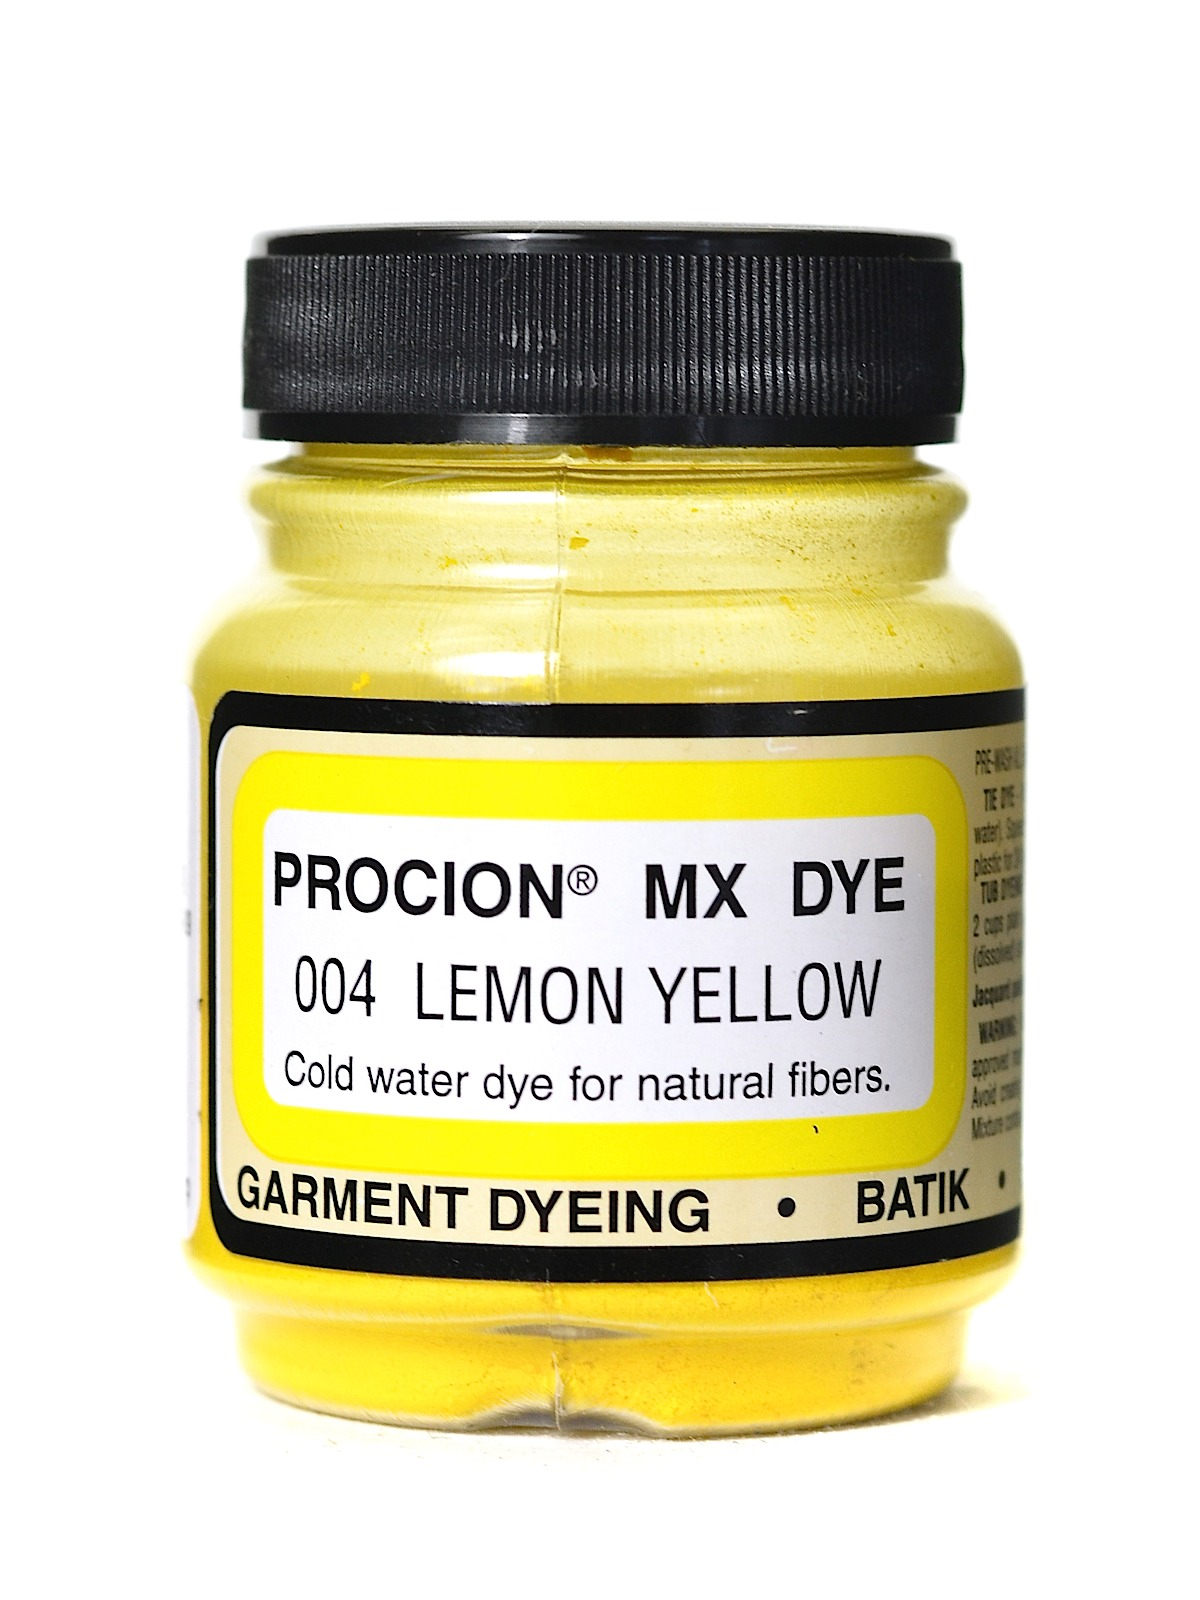 Jacquard Procion MX dye 2004 lemon yellow